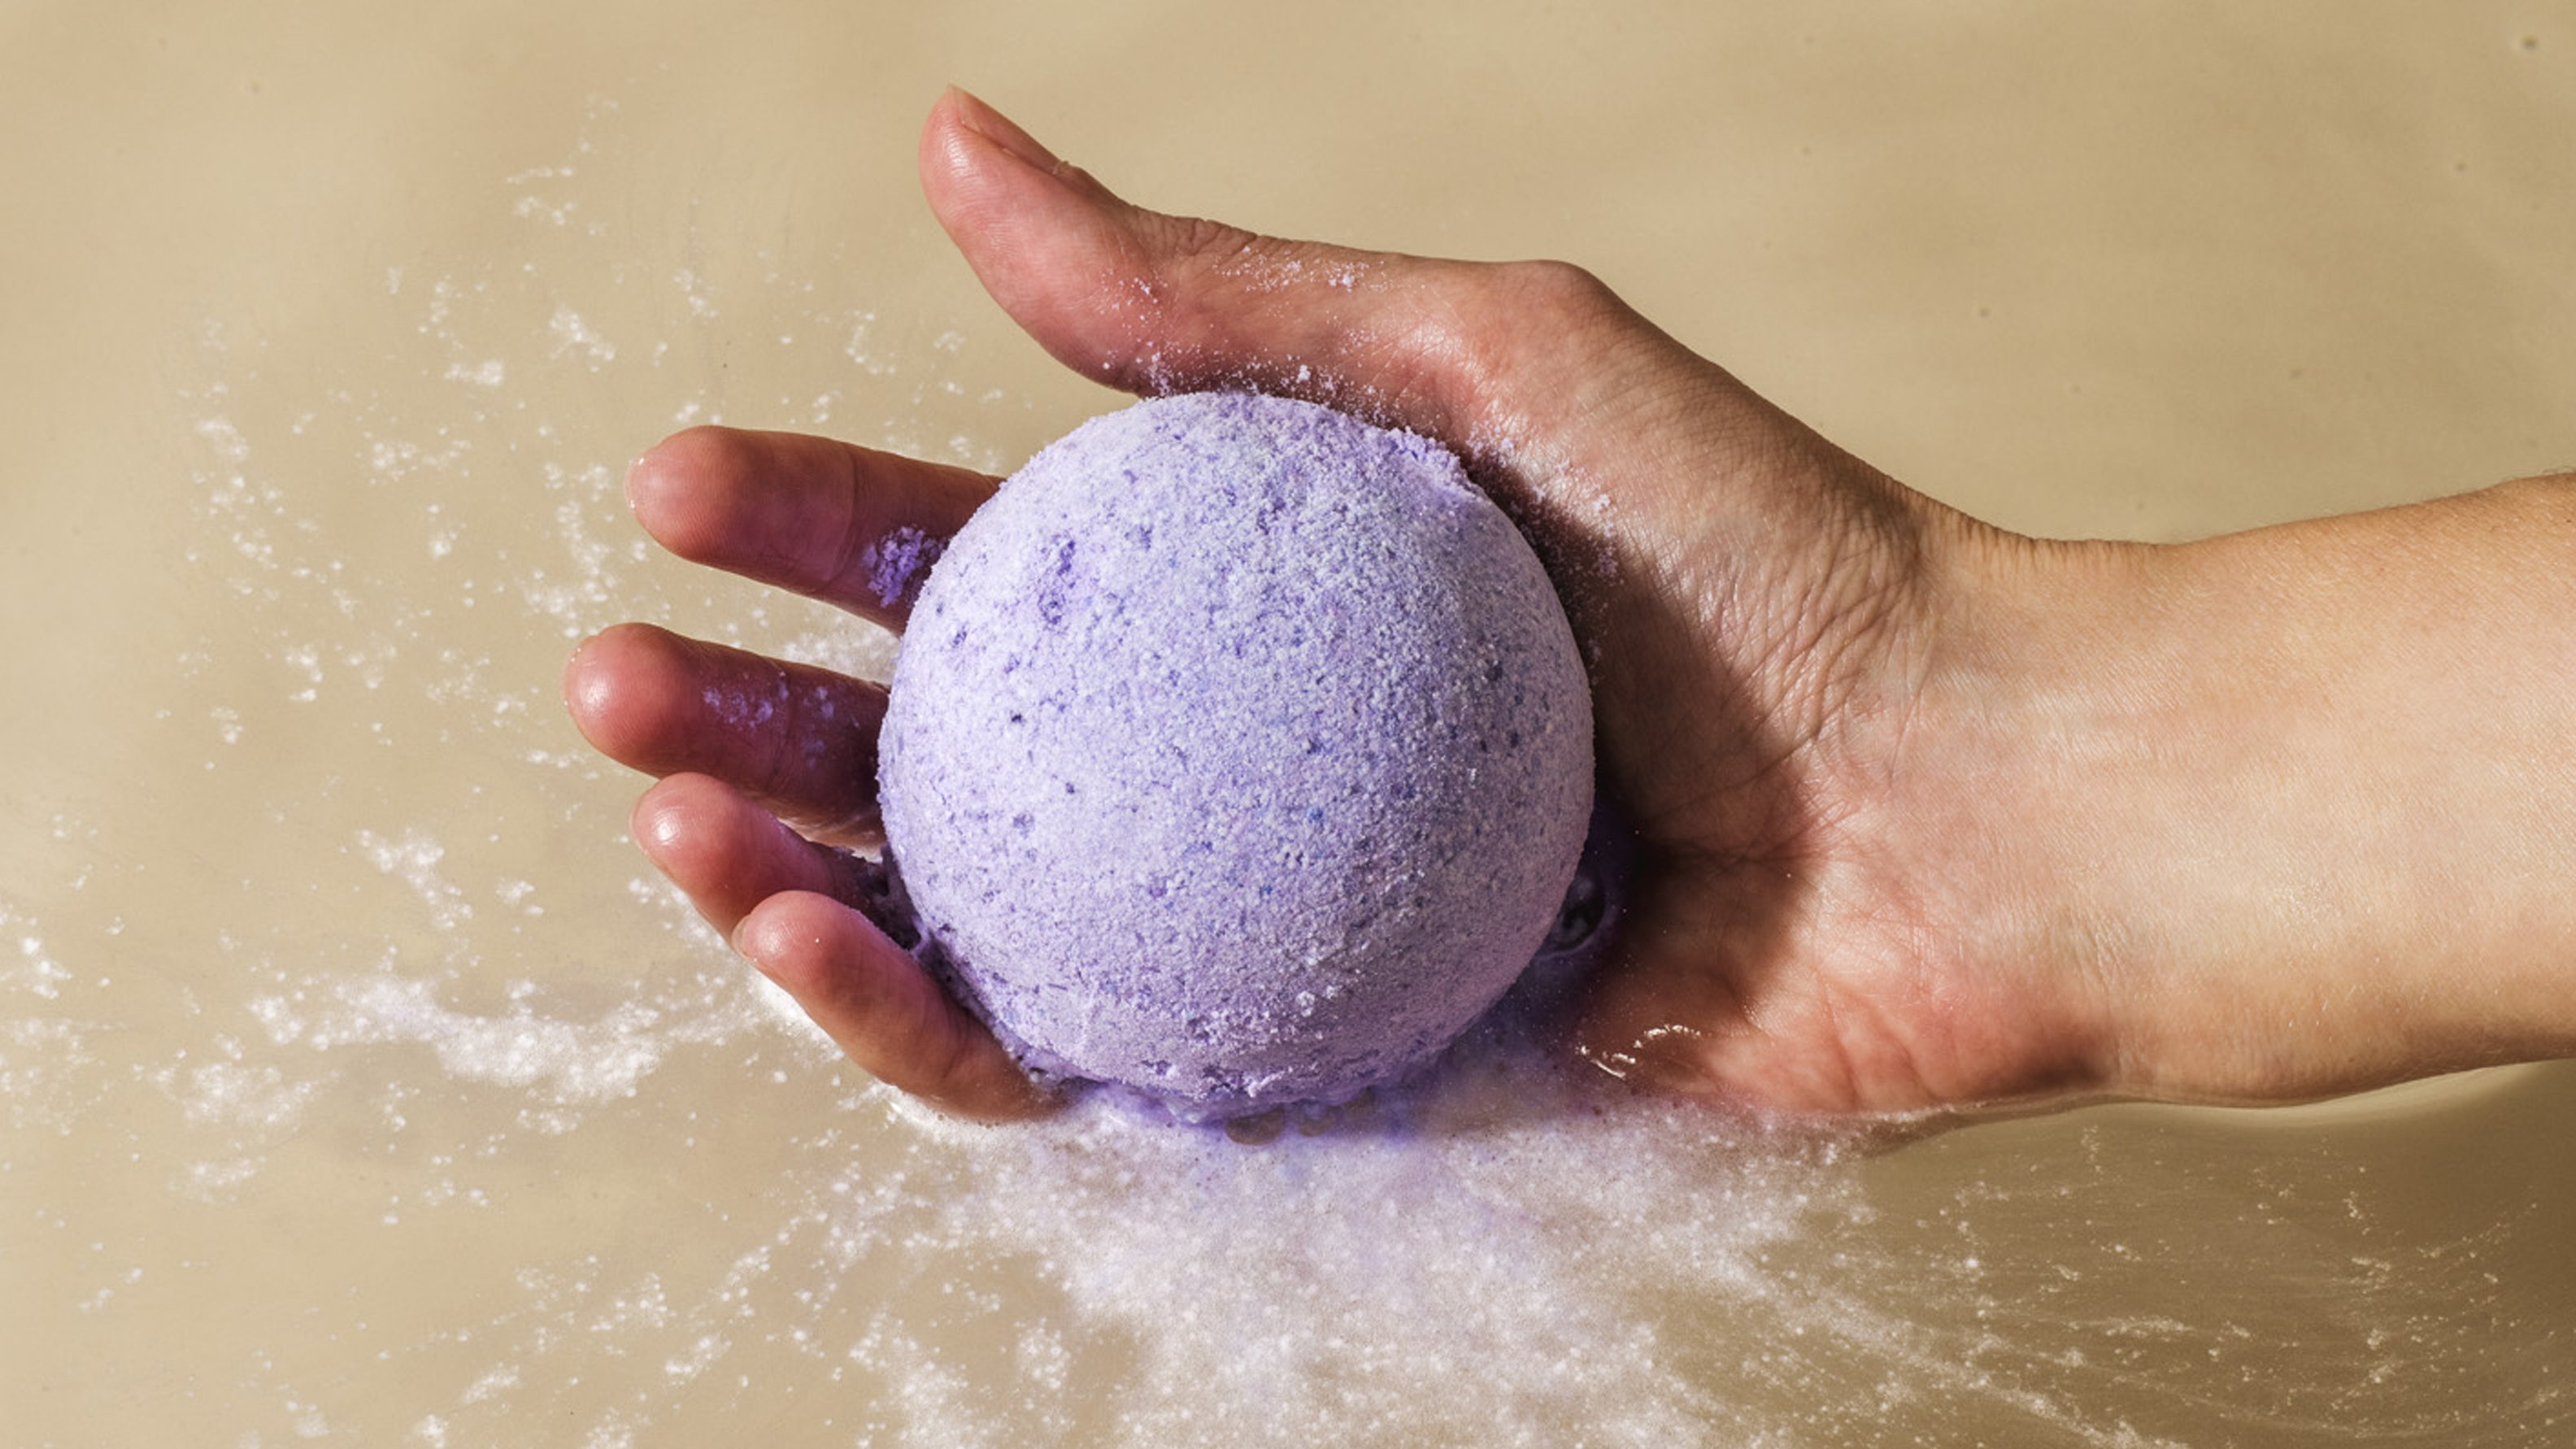 How To Make Your Own CBD Bath Bomb